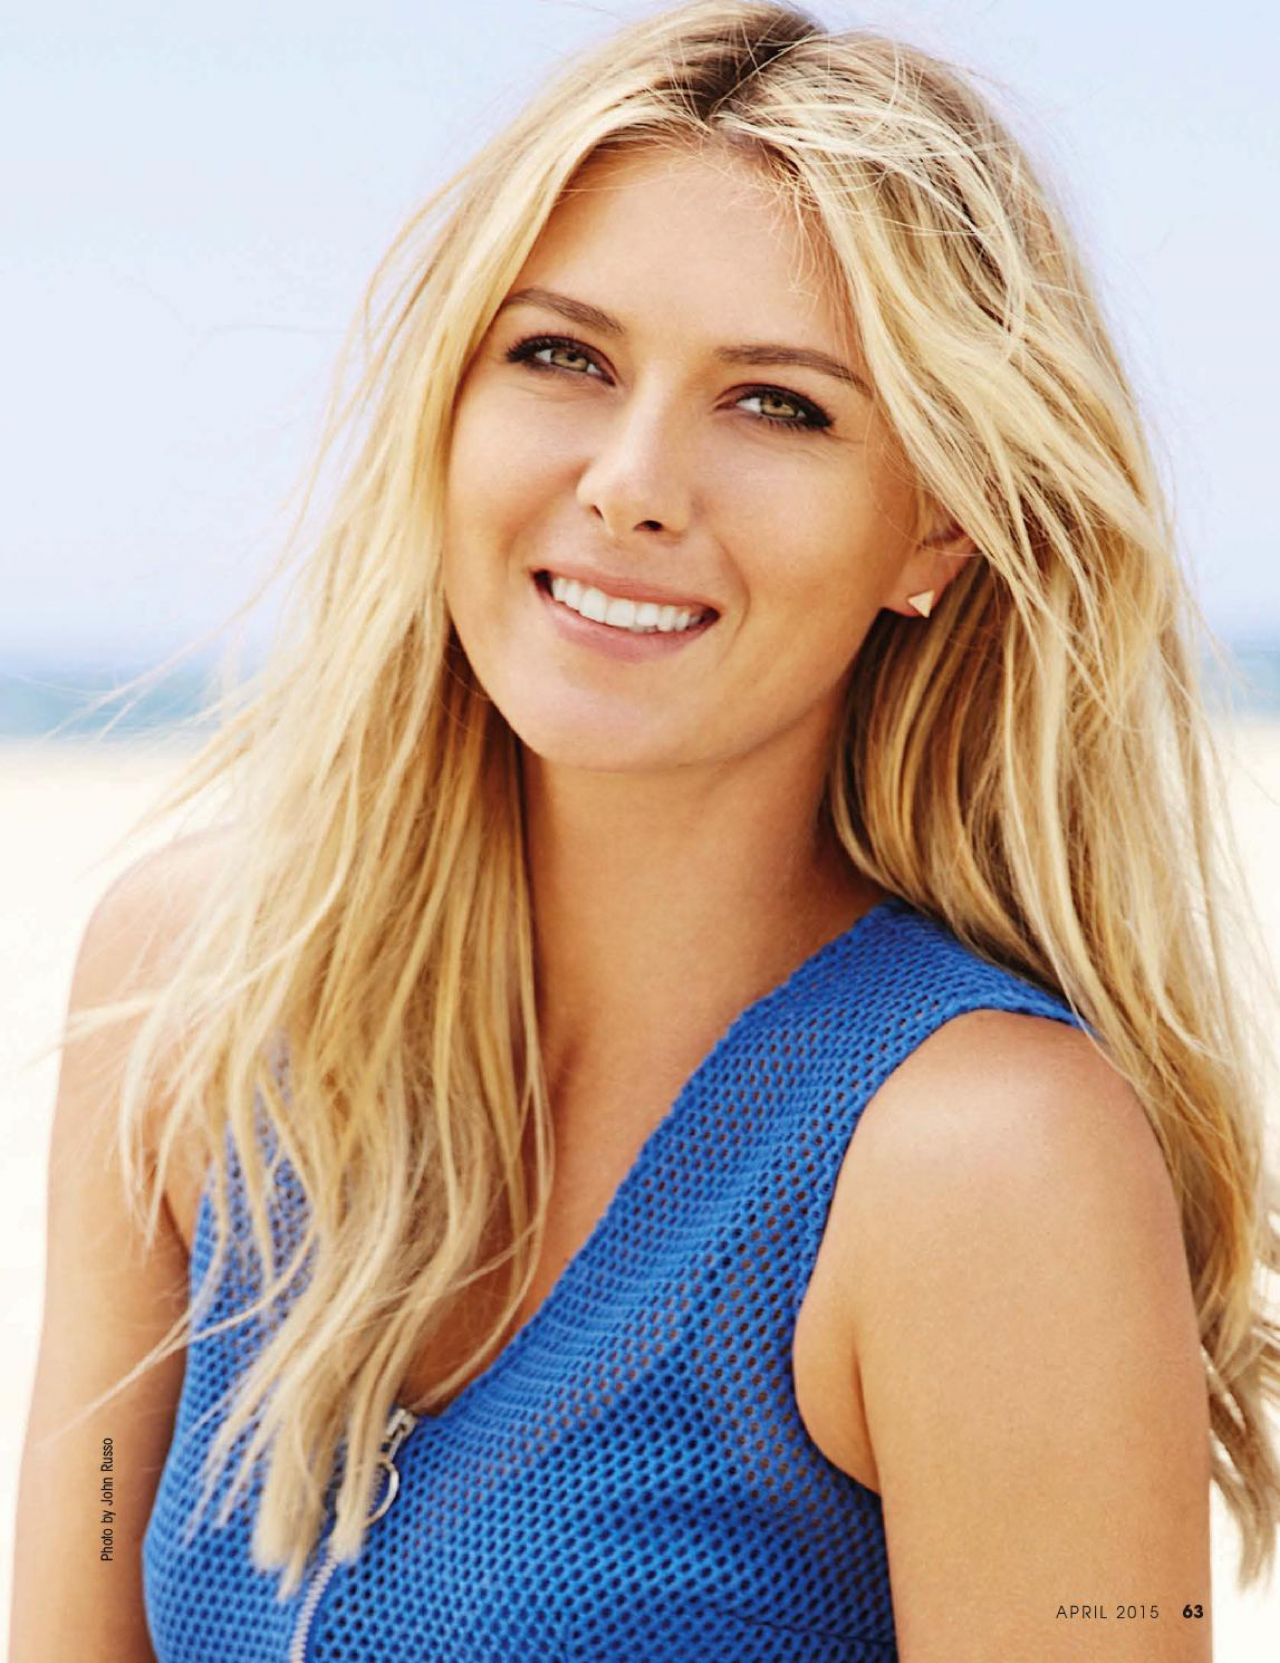 Maria Sharapova The Boca Raton Observer Magazine April